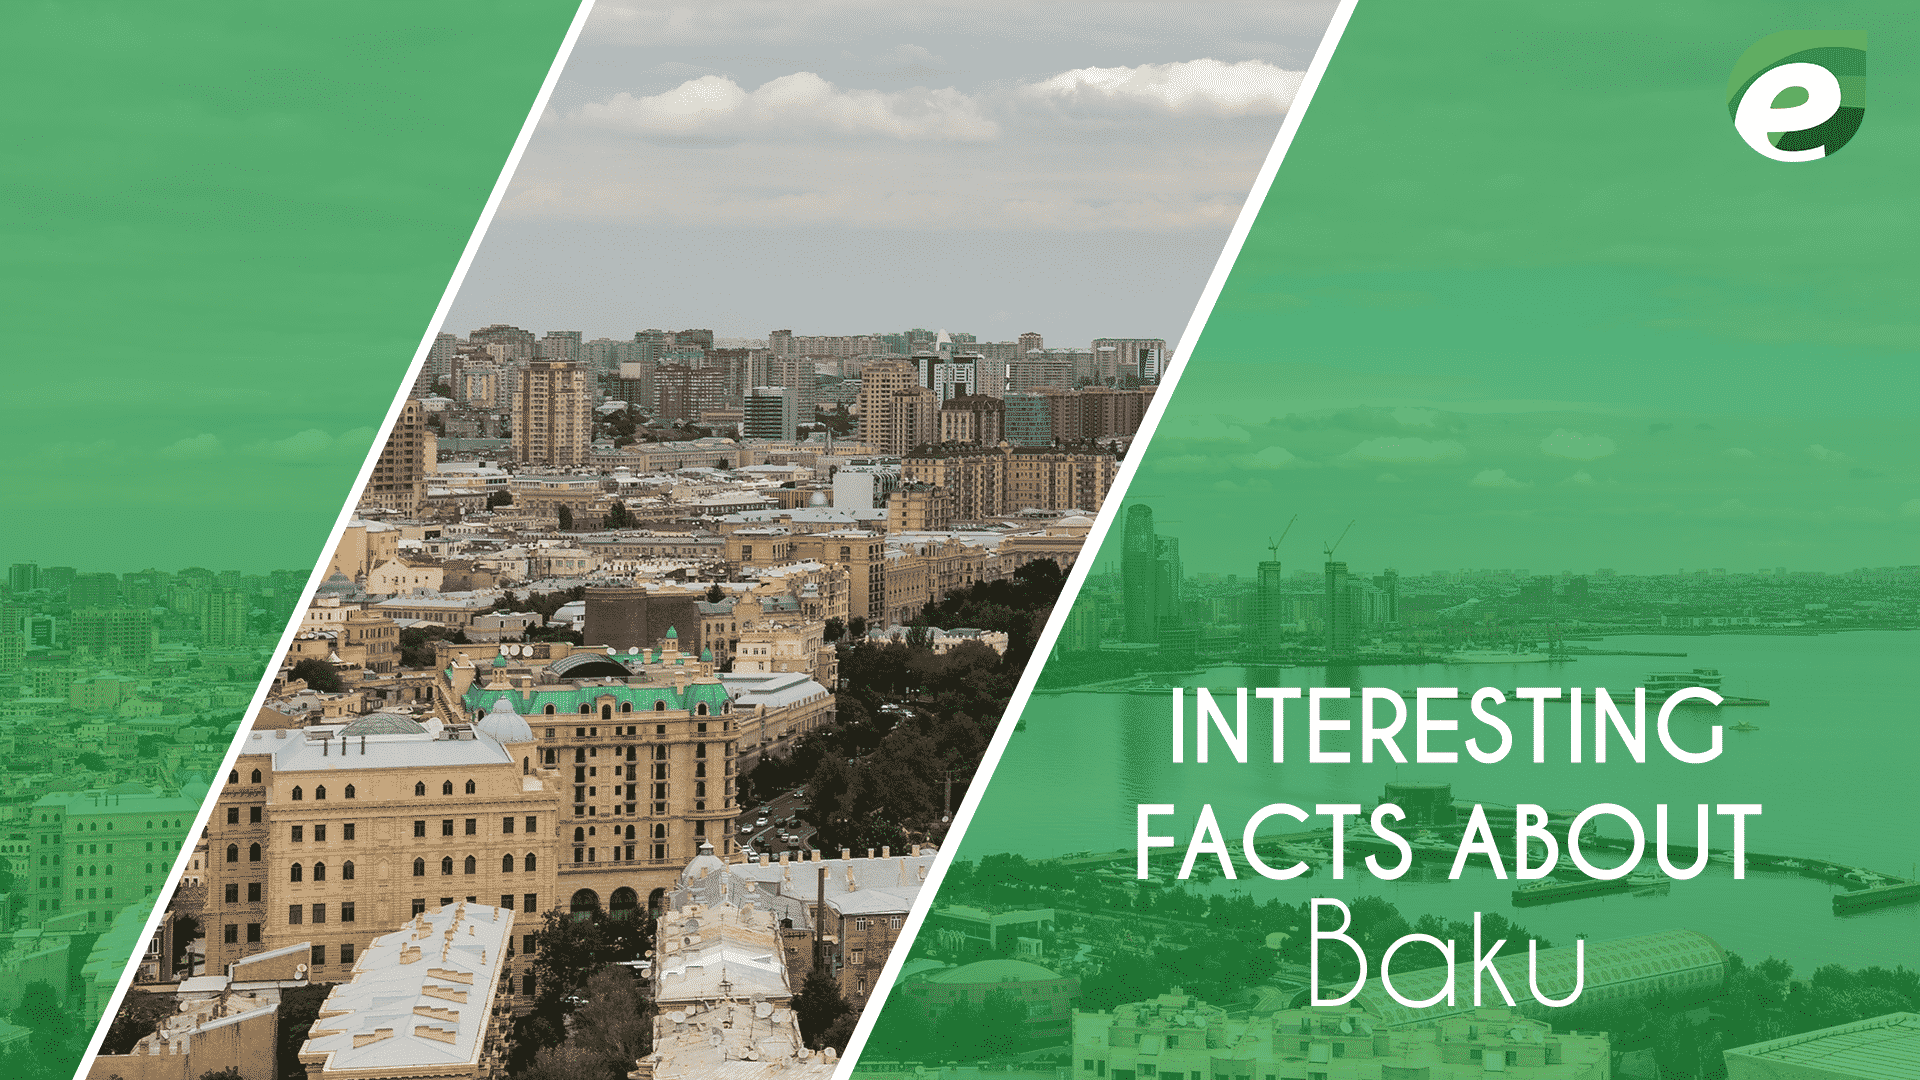 Baku- interesting facts